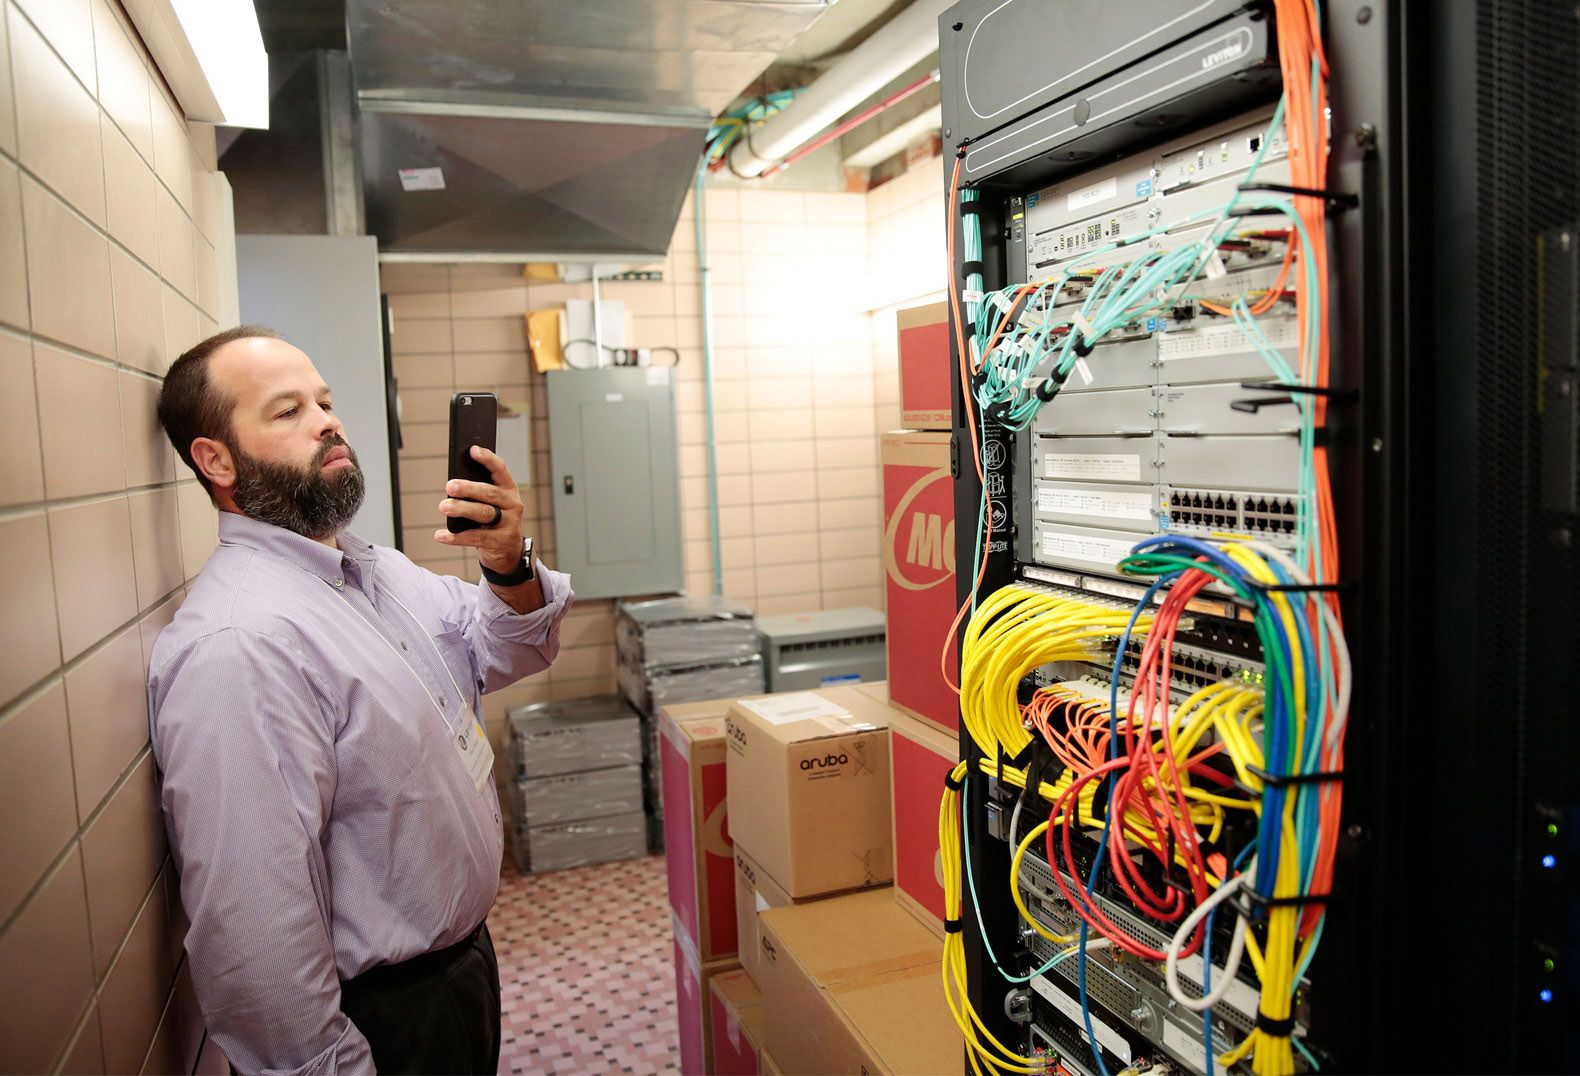 Mike Wielgus, an IT teacher from Troy, Illinois, photographs a server room during a technology tour of West Leyden High School.